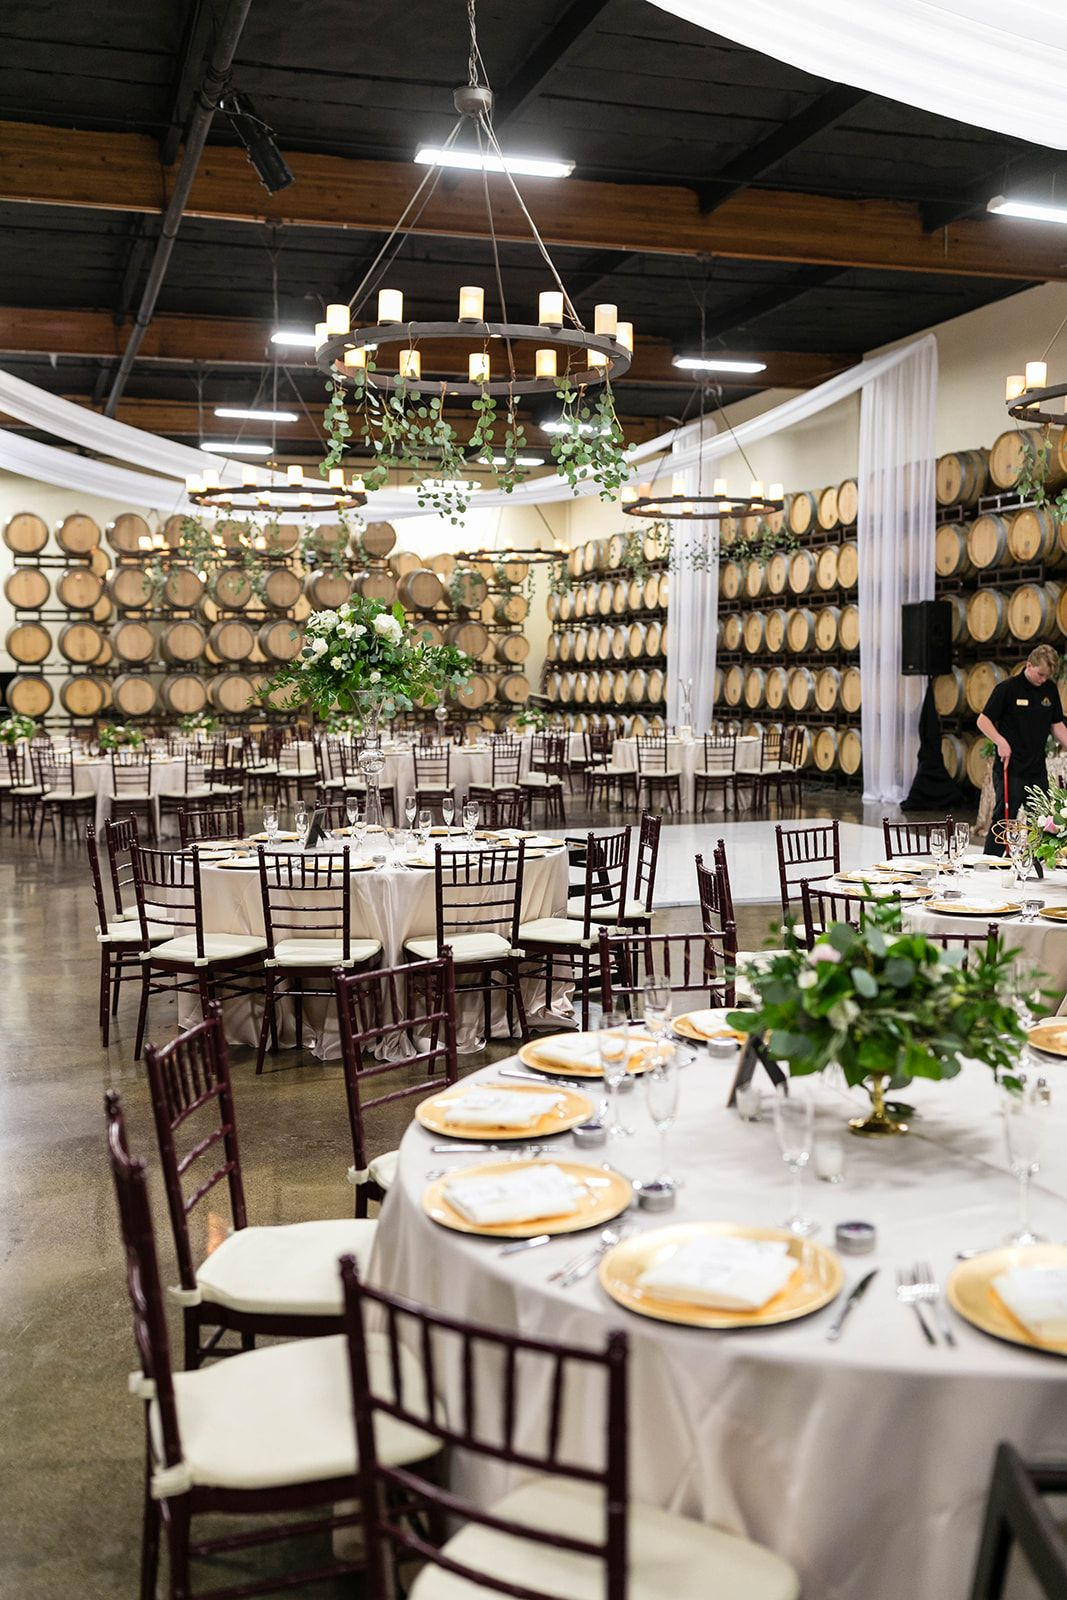 Reception area Winery wedding at Callaway Winery in